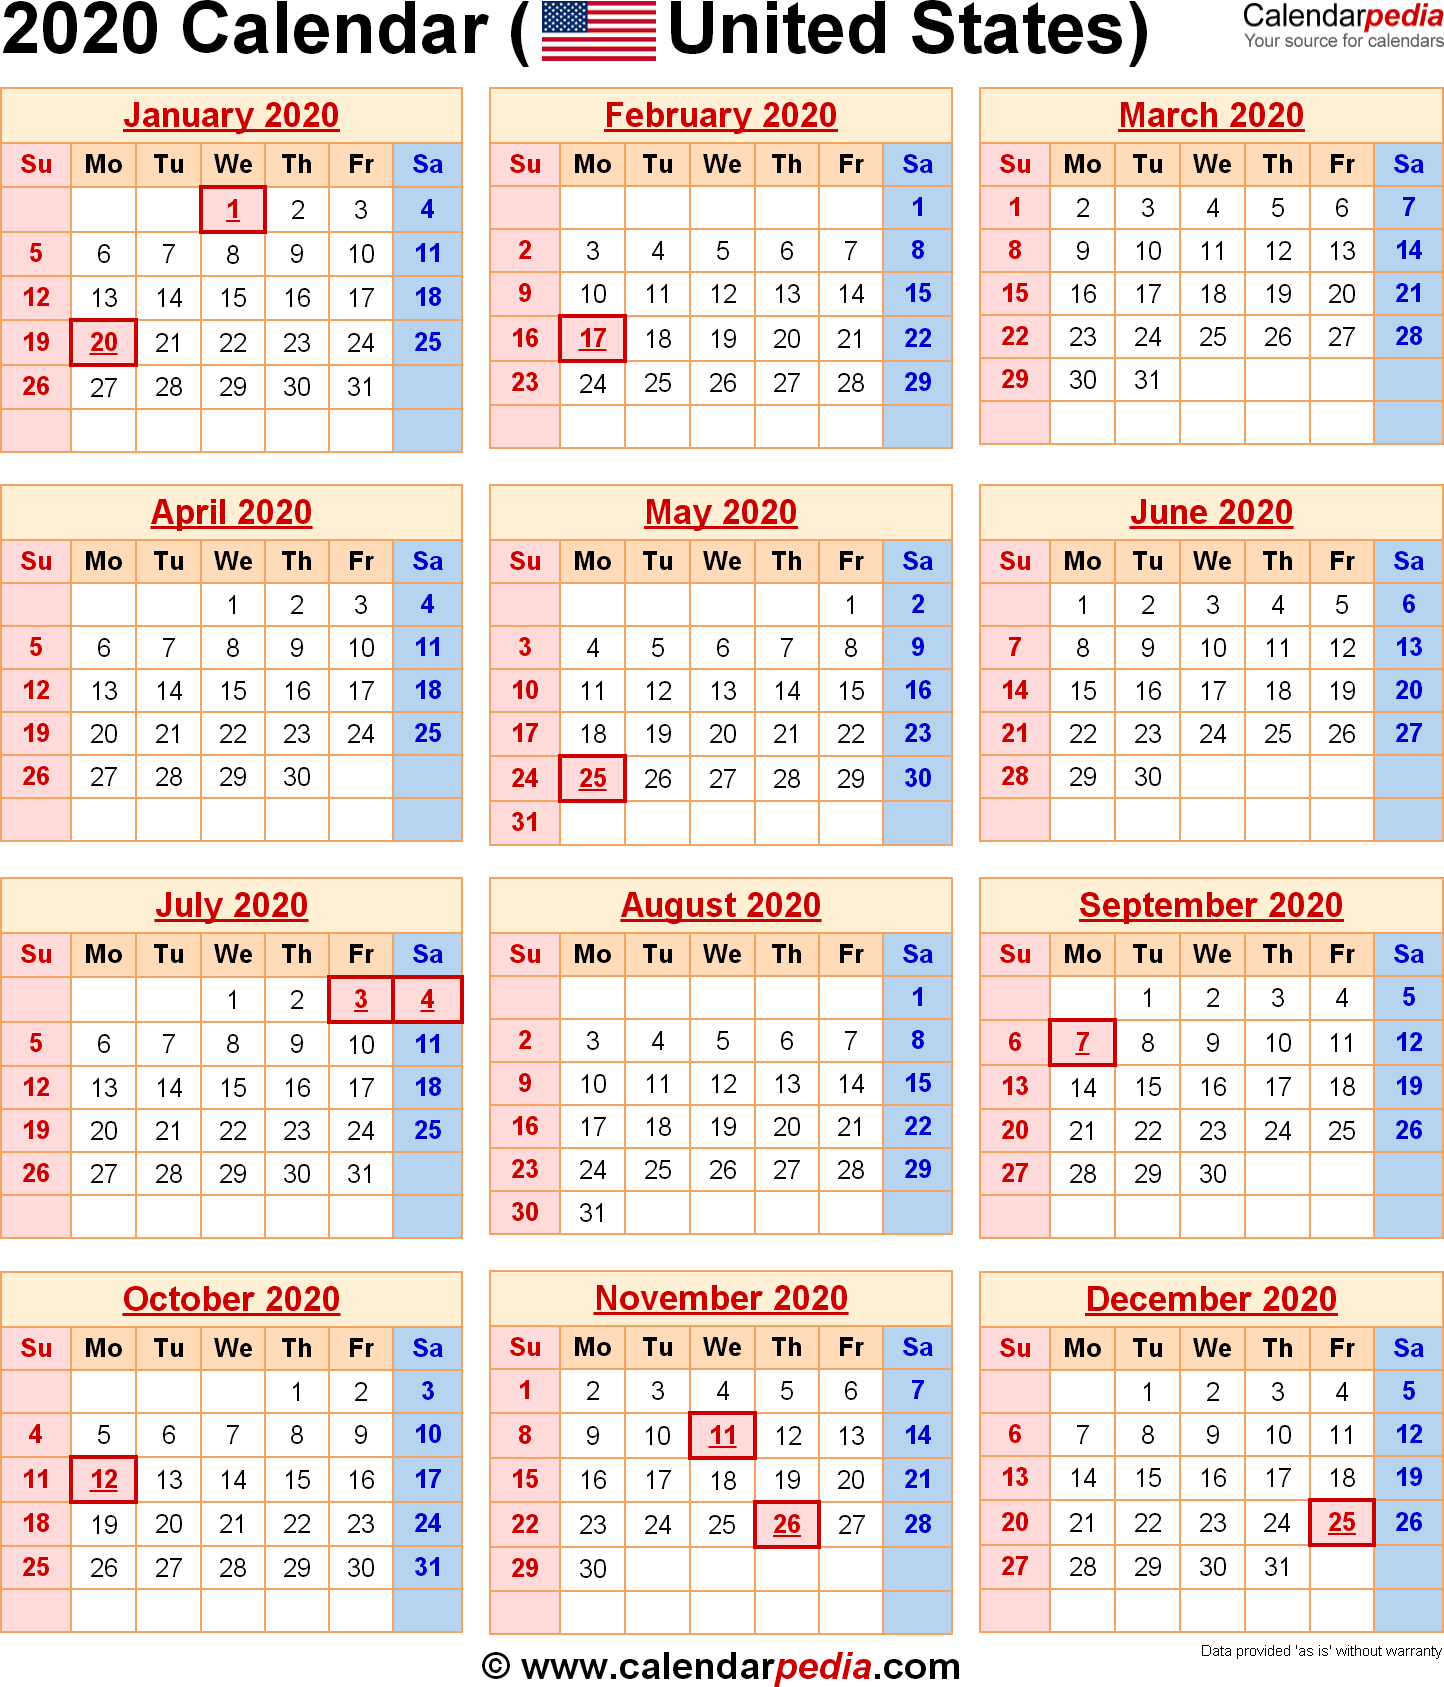 Calendar For Year 2020 United States - Togo.wpart.co